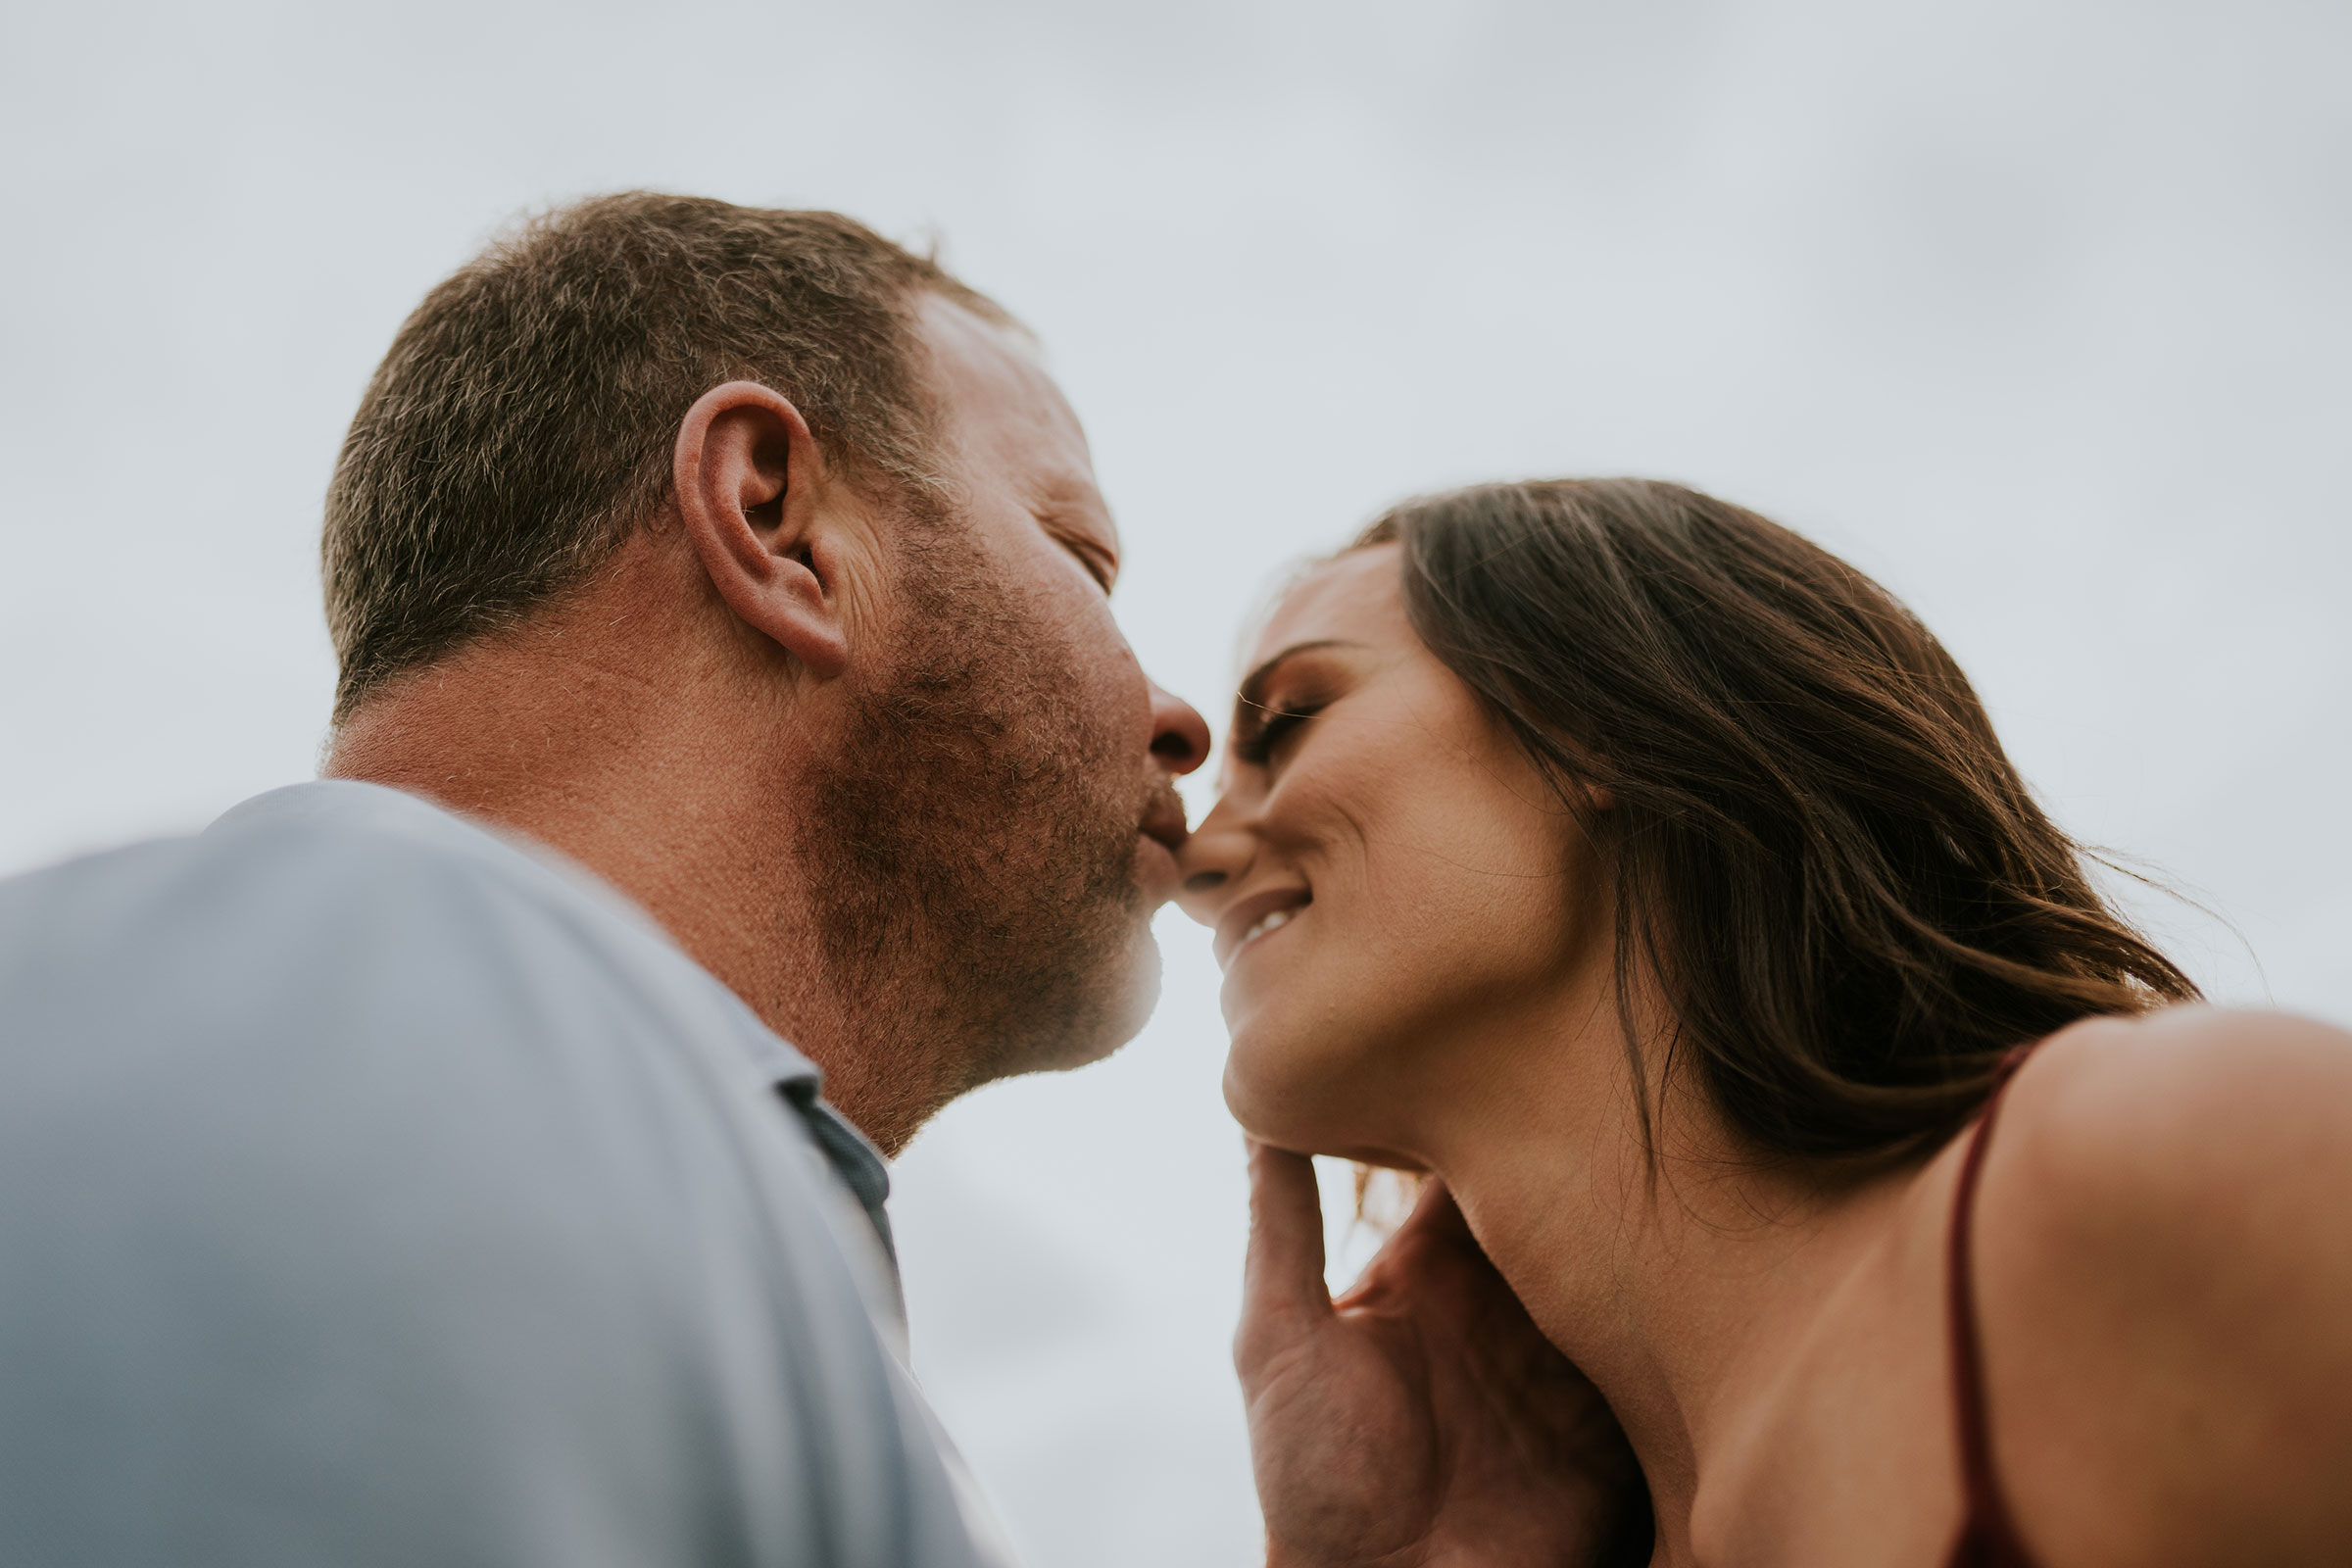 couple-smiling-and-kissing-nose-in-sun-light-engagement-desmoines-iowa-raelyn-ramey-photography.jpg